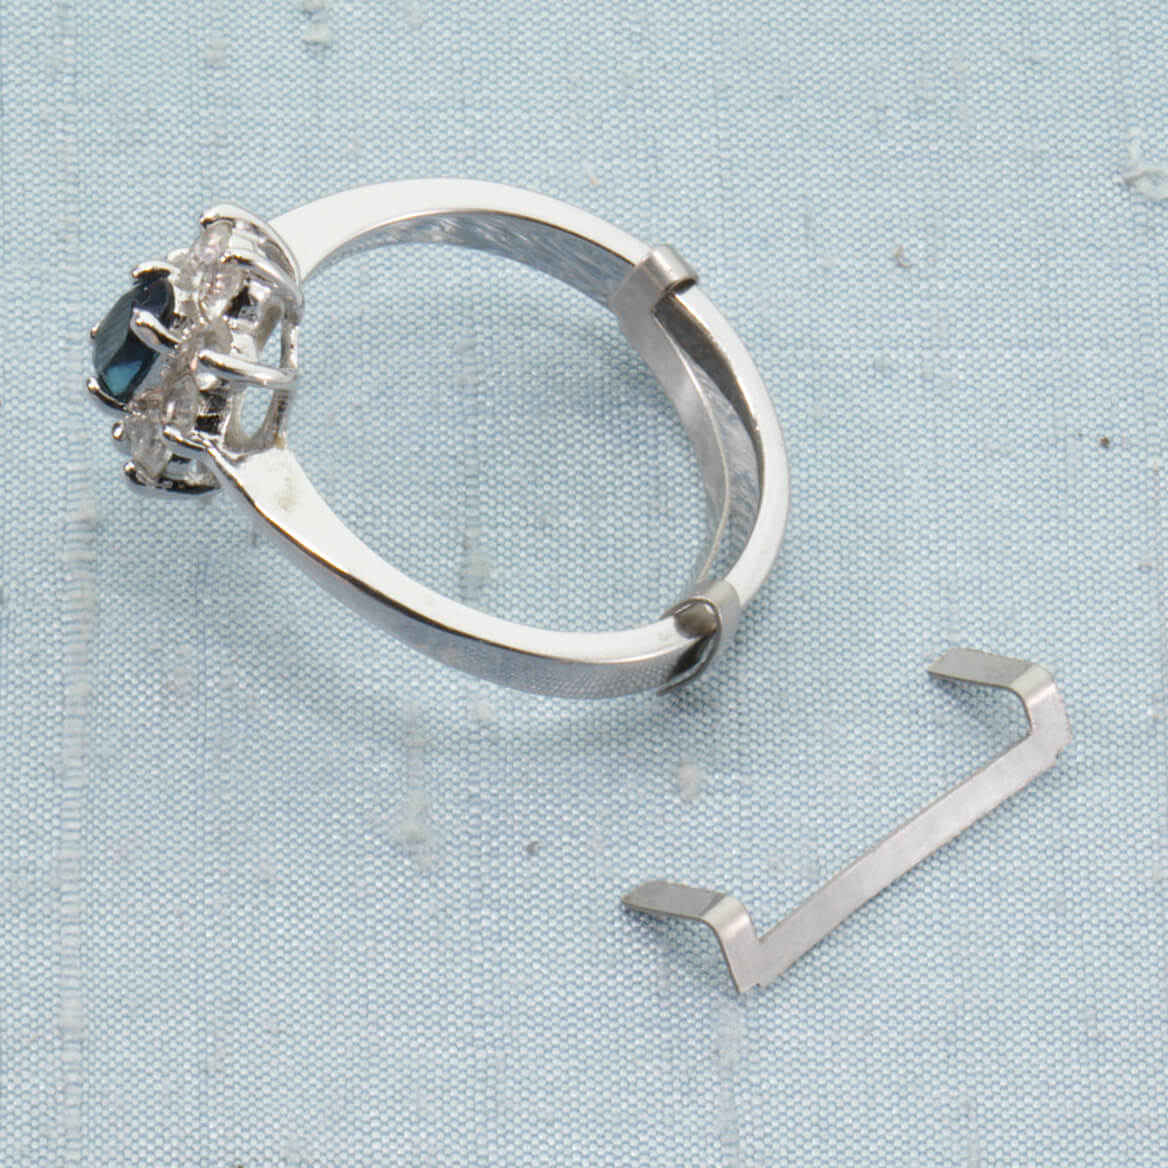 Ring Size Adjuster Ring Size Reducer Jewelry Helpers